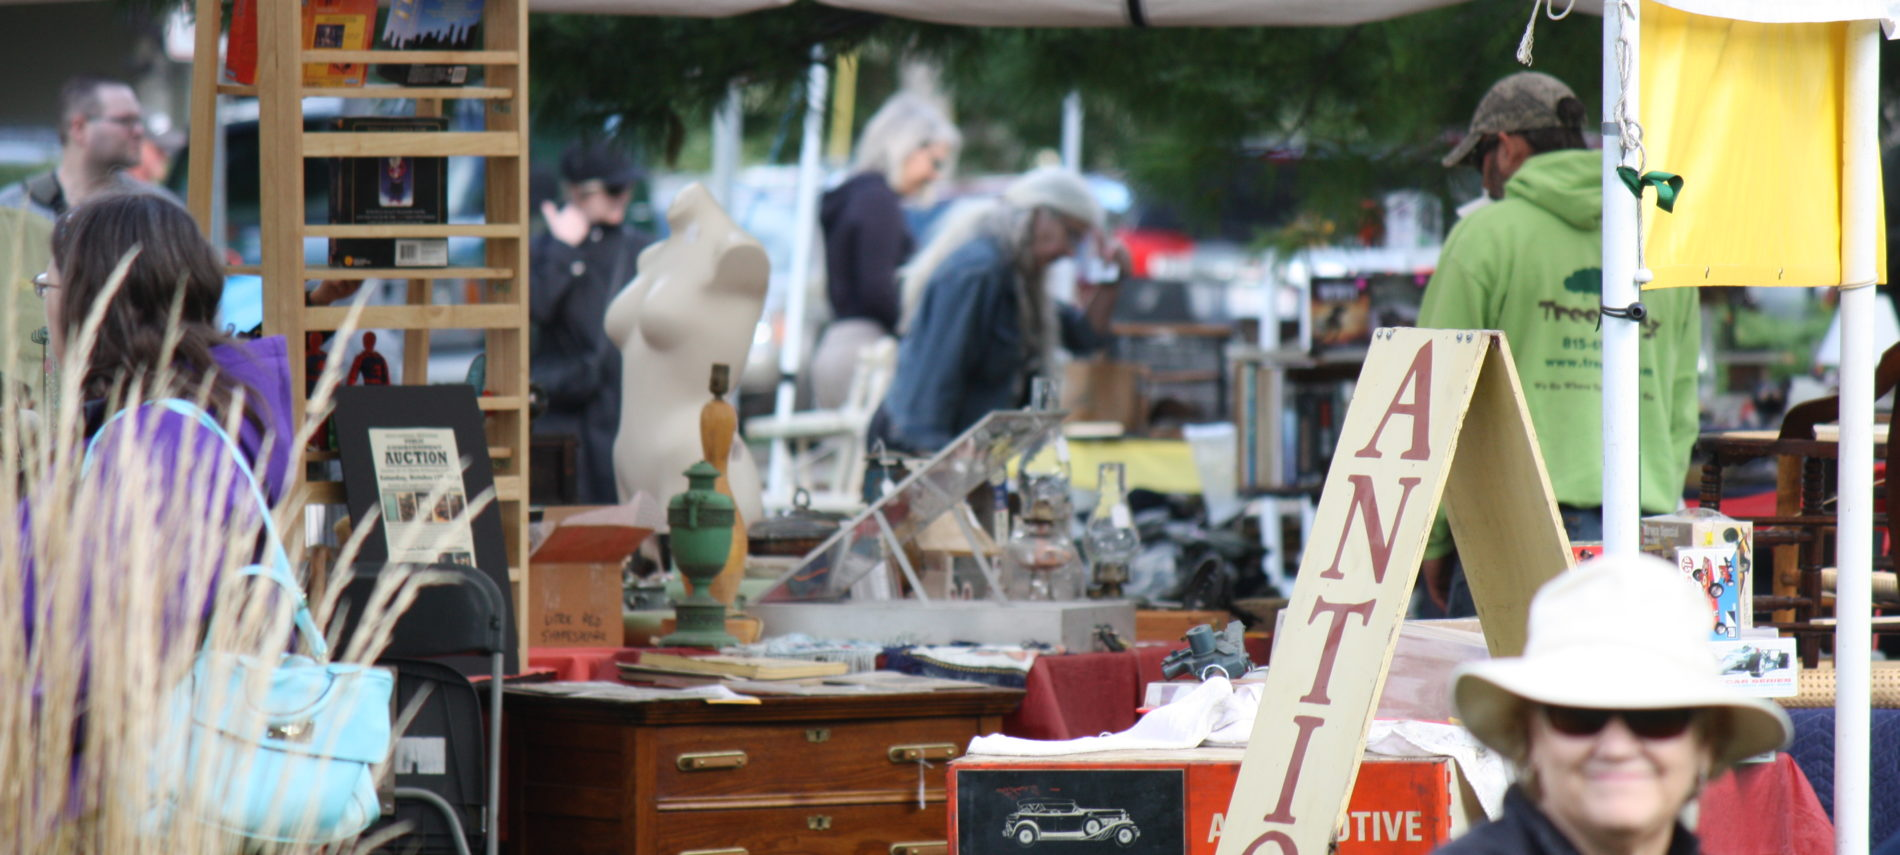 Several of the vendors' displays at the Antiques area.